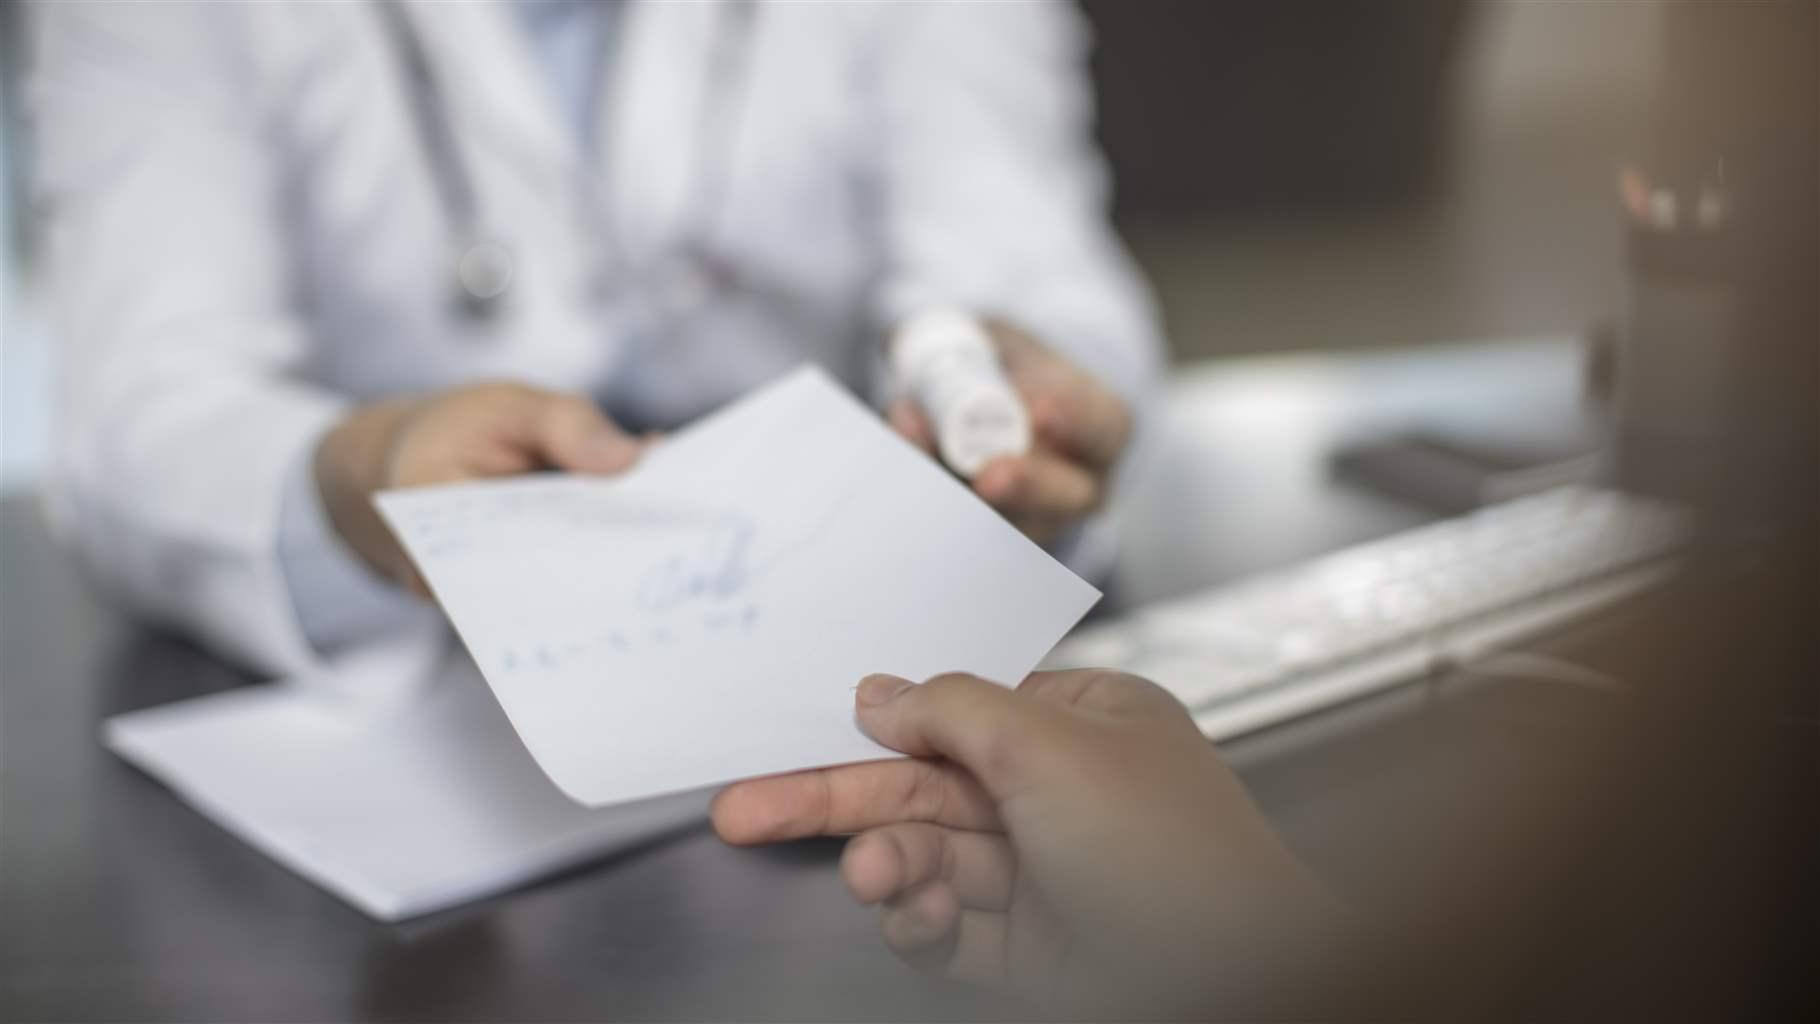 Doctor giving patient a note